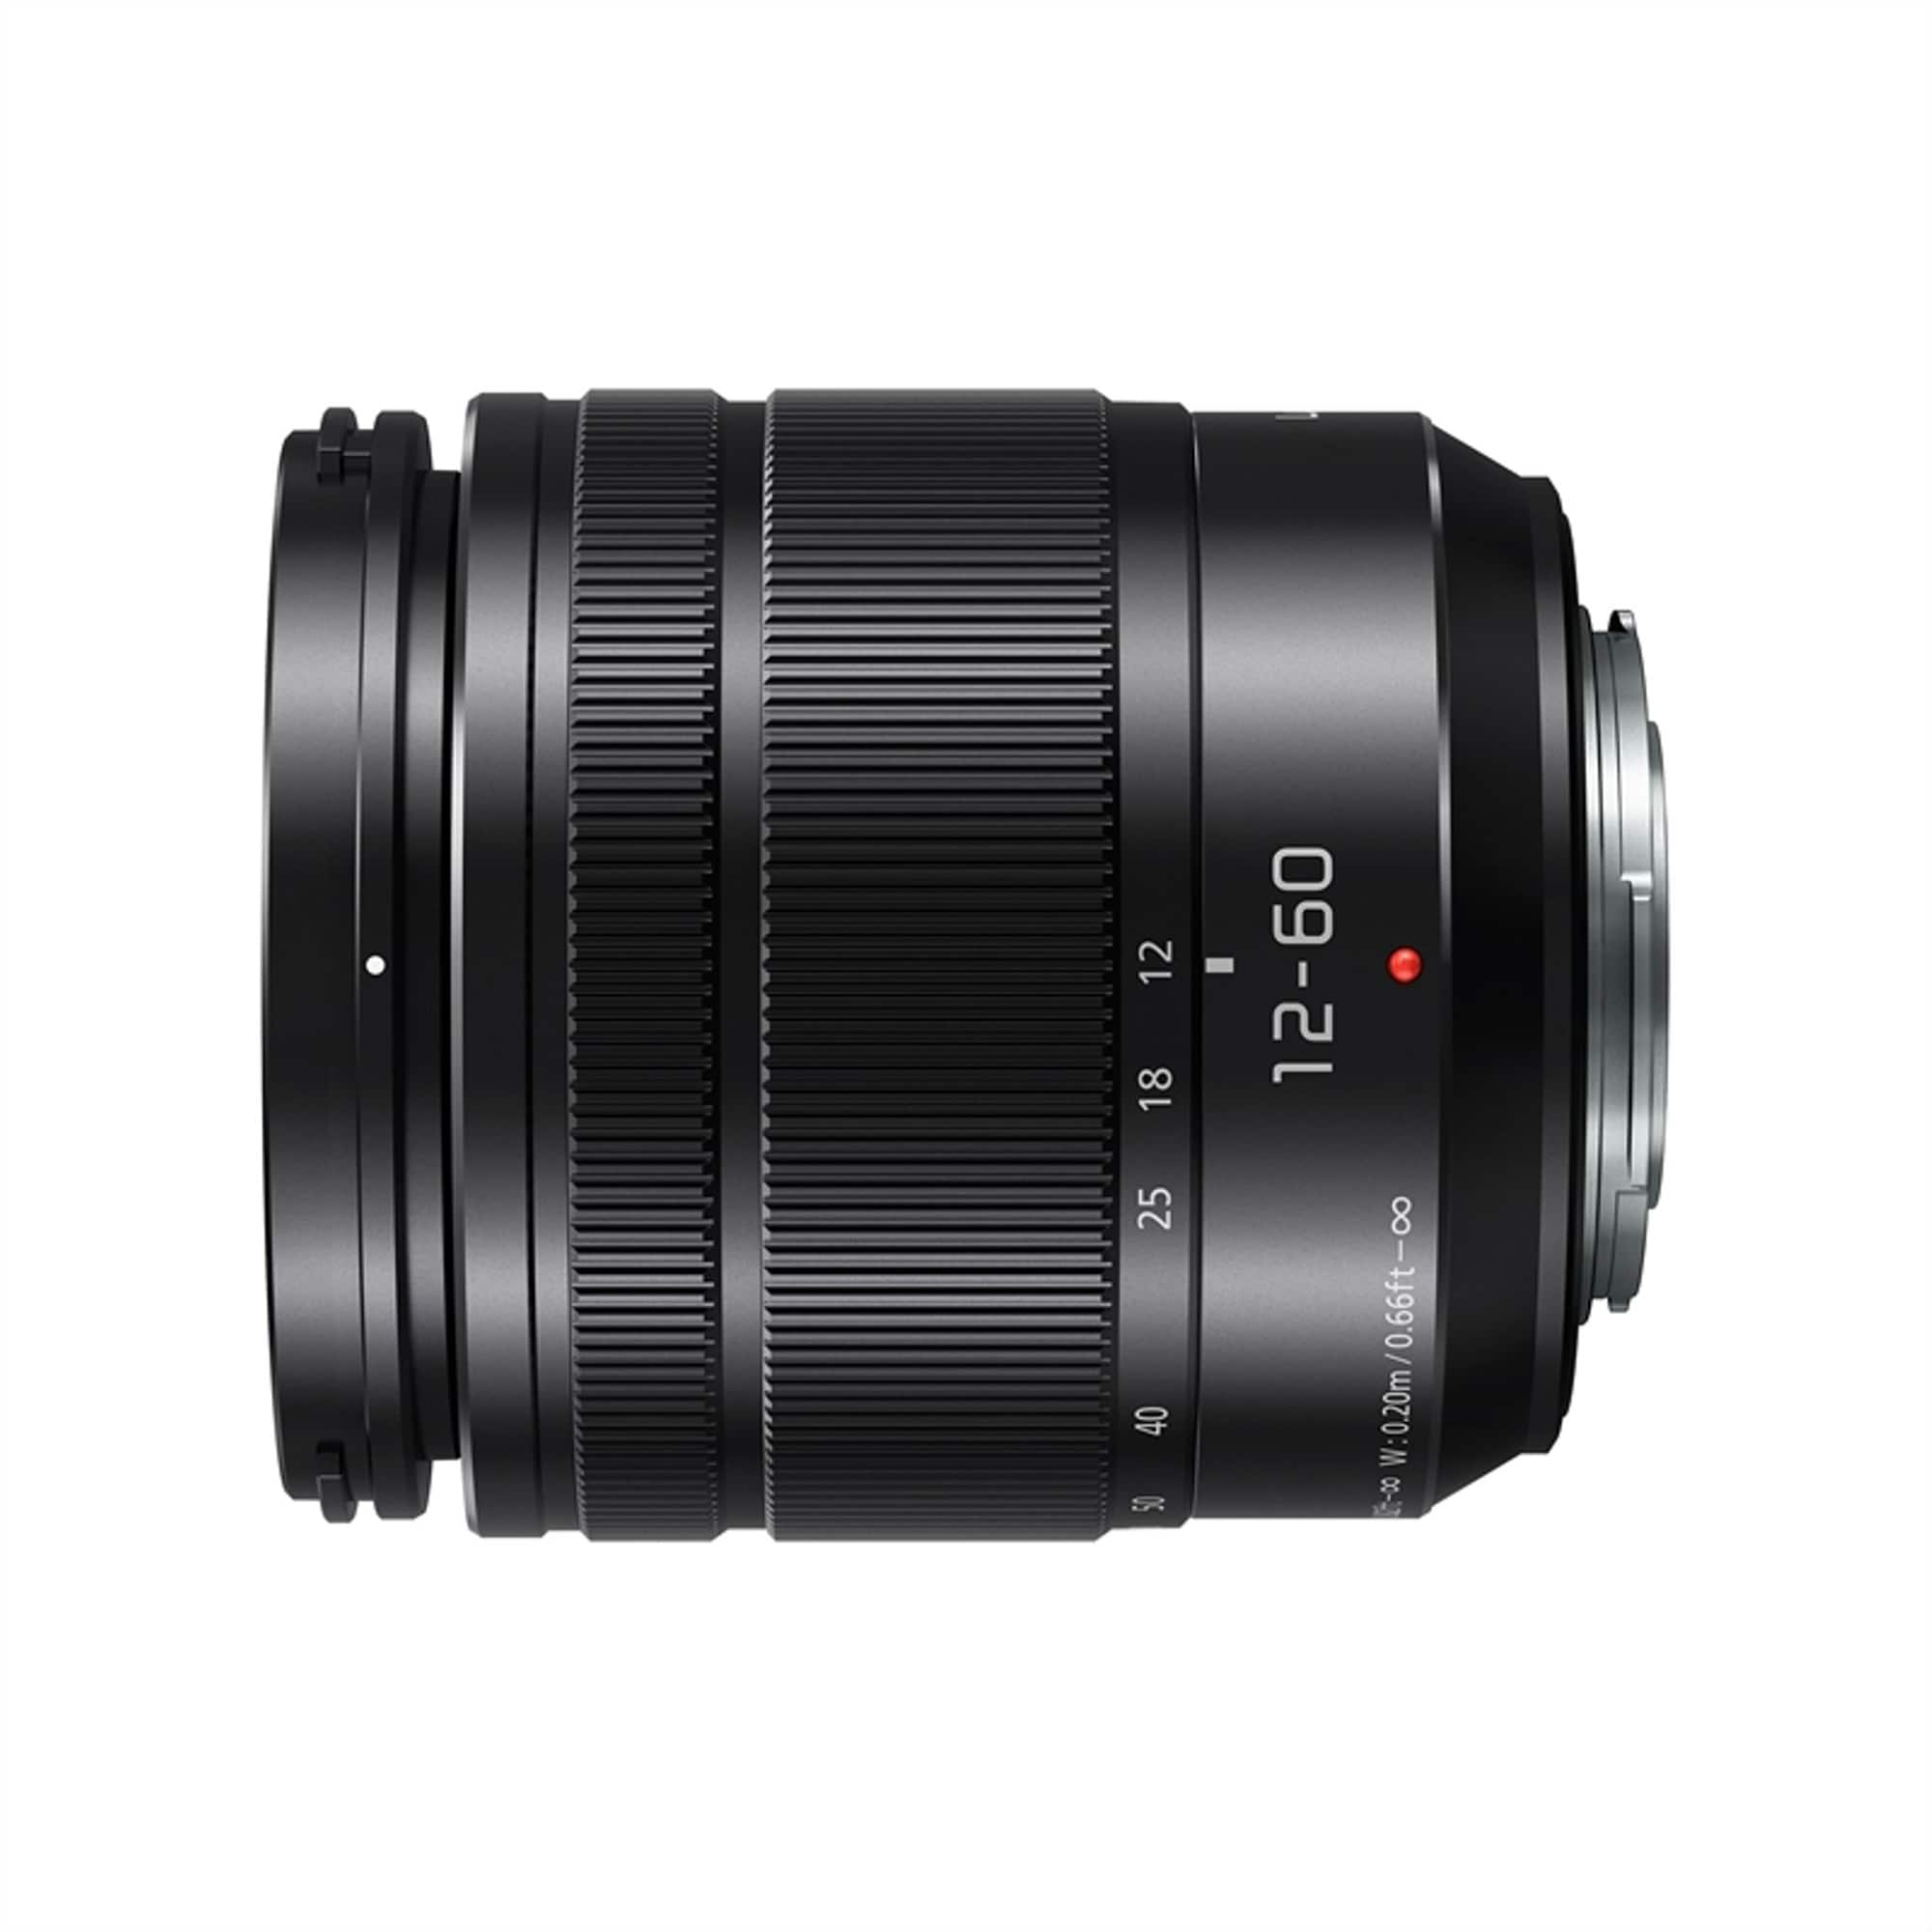 Panasonic Lumix G 12-60mm f/3,5-5,6 Power OIS - BULK